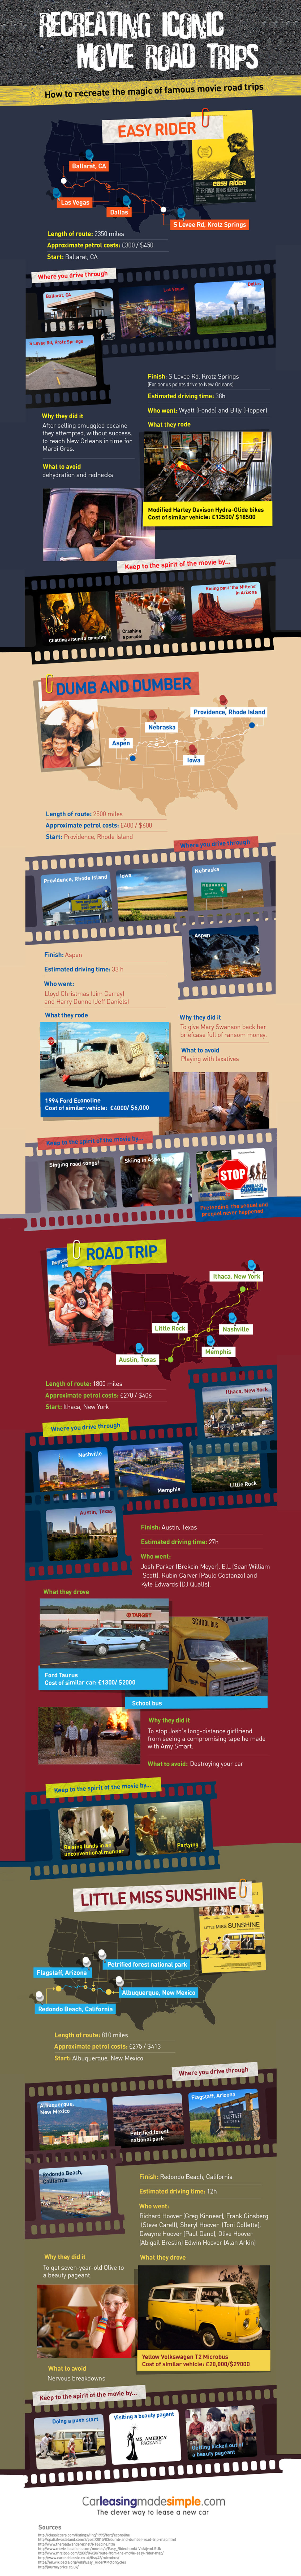 Recreating Iconic Movie Road Trips Infographic